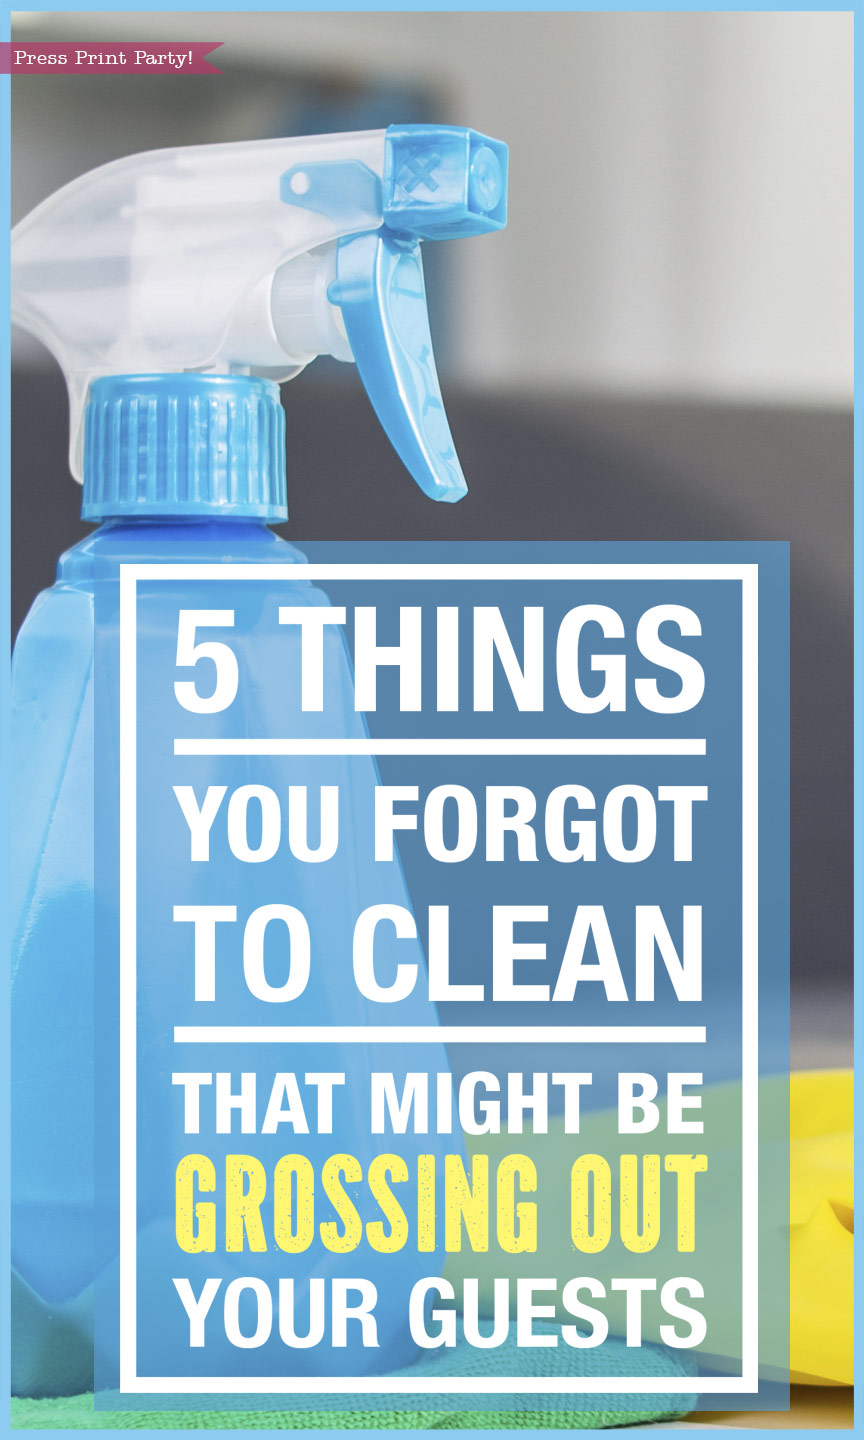 5 things you forgot to clean that might be grossing out your guests - by Press Print Party!